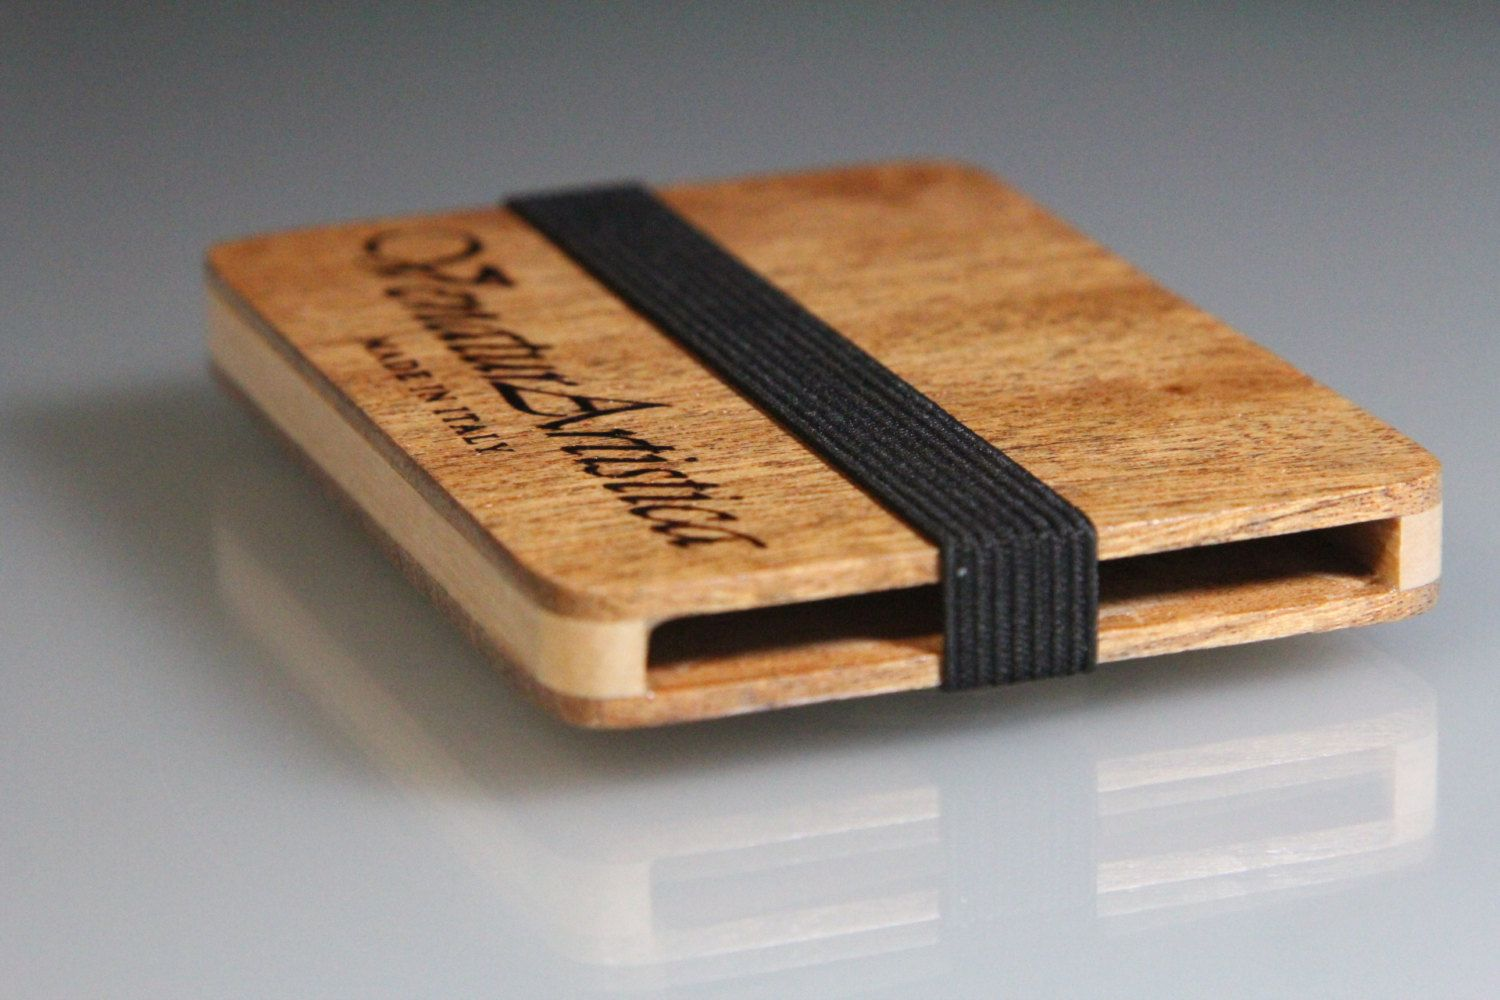 Wooden wallet business card holder wood wallet card wallet wooden wallet business card holder wood wallet card wallet personalized gift gift for him gift for her anniversary gift reheart Choice Image